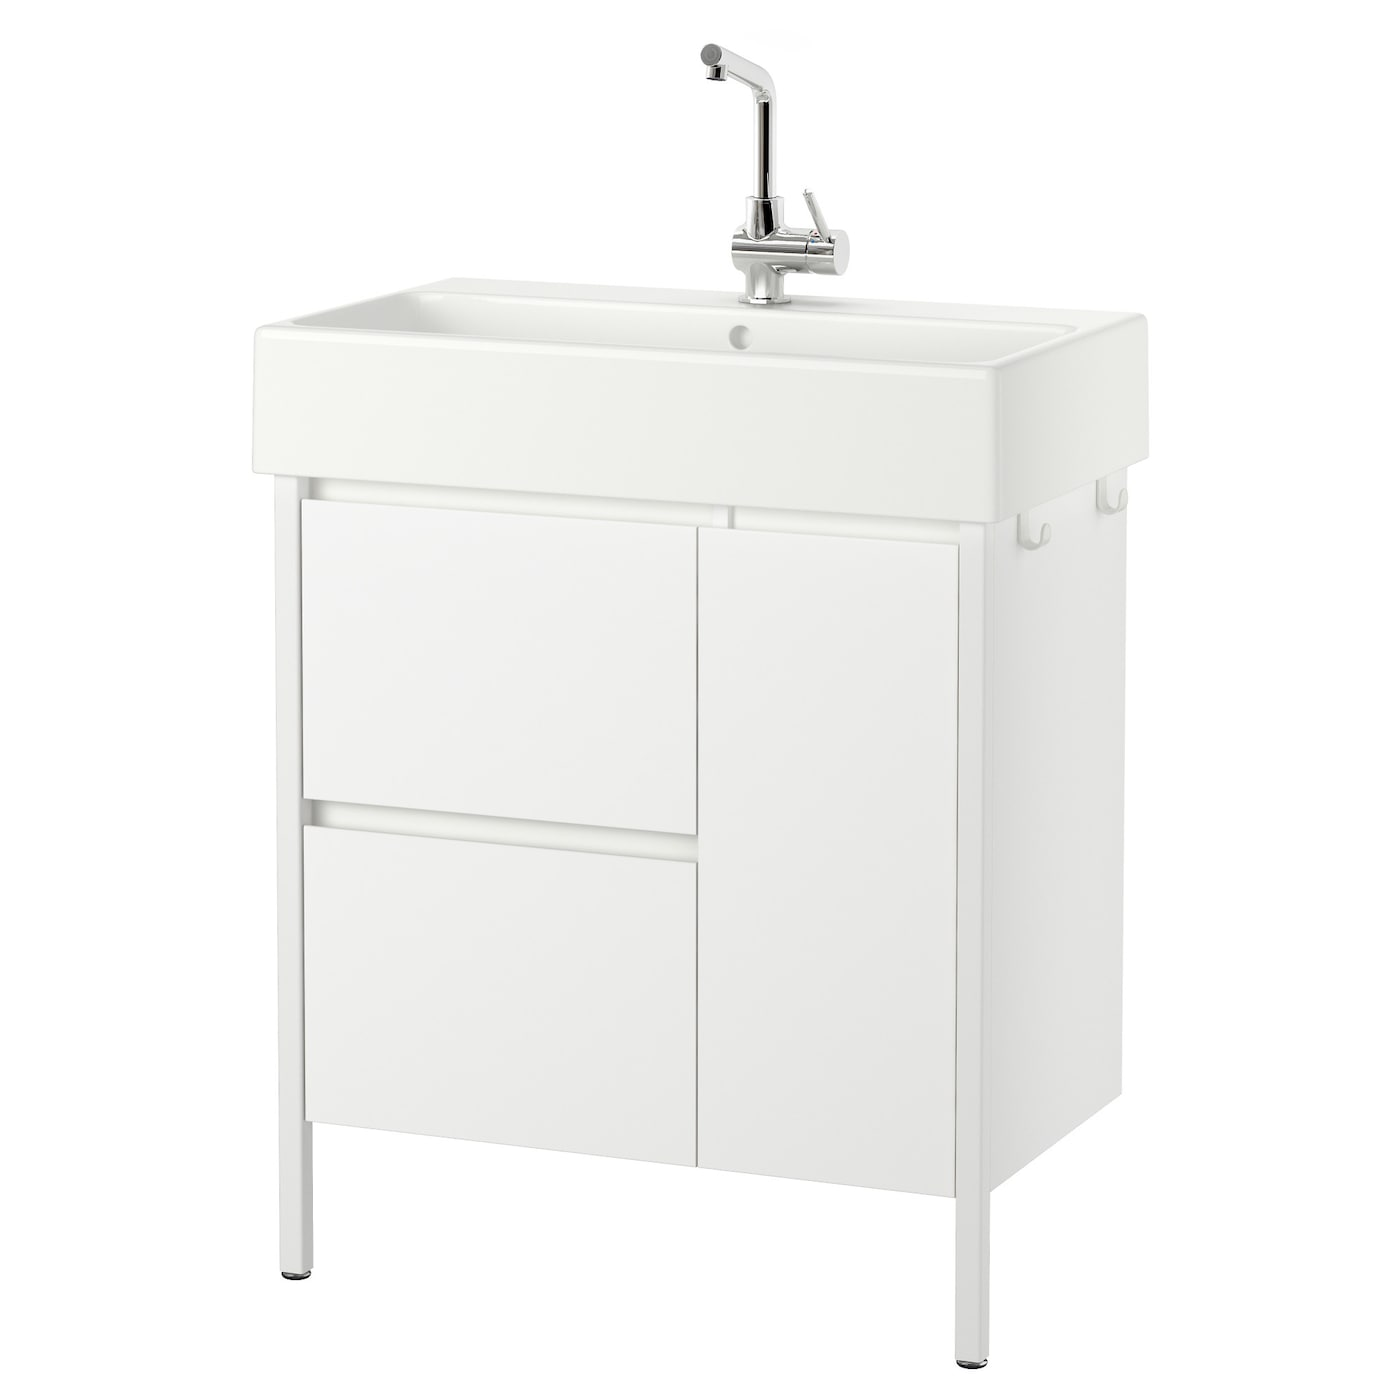 Bathroom Sinks Ikea bathroom vanity units | ikea ireland – dublin